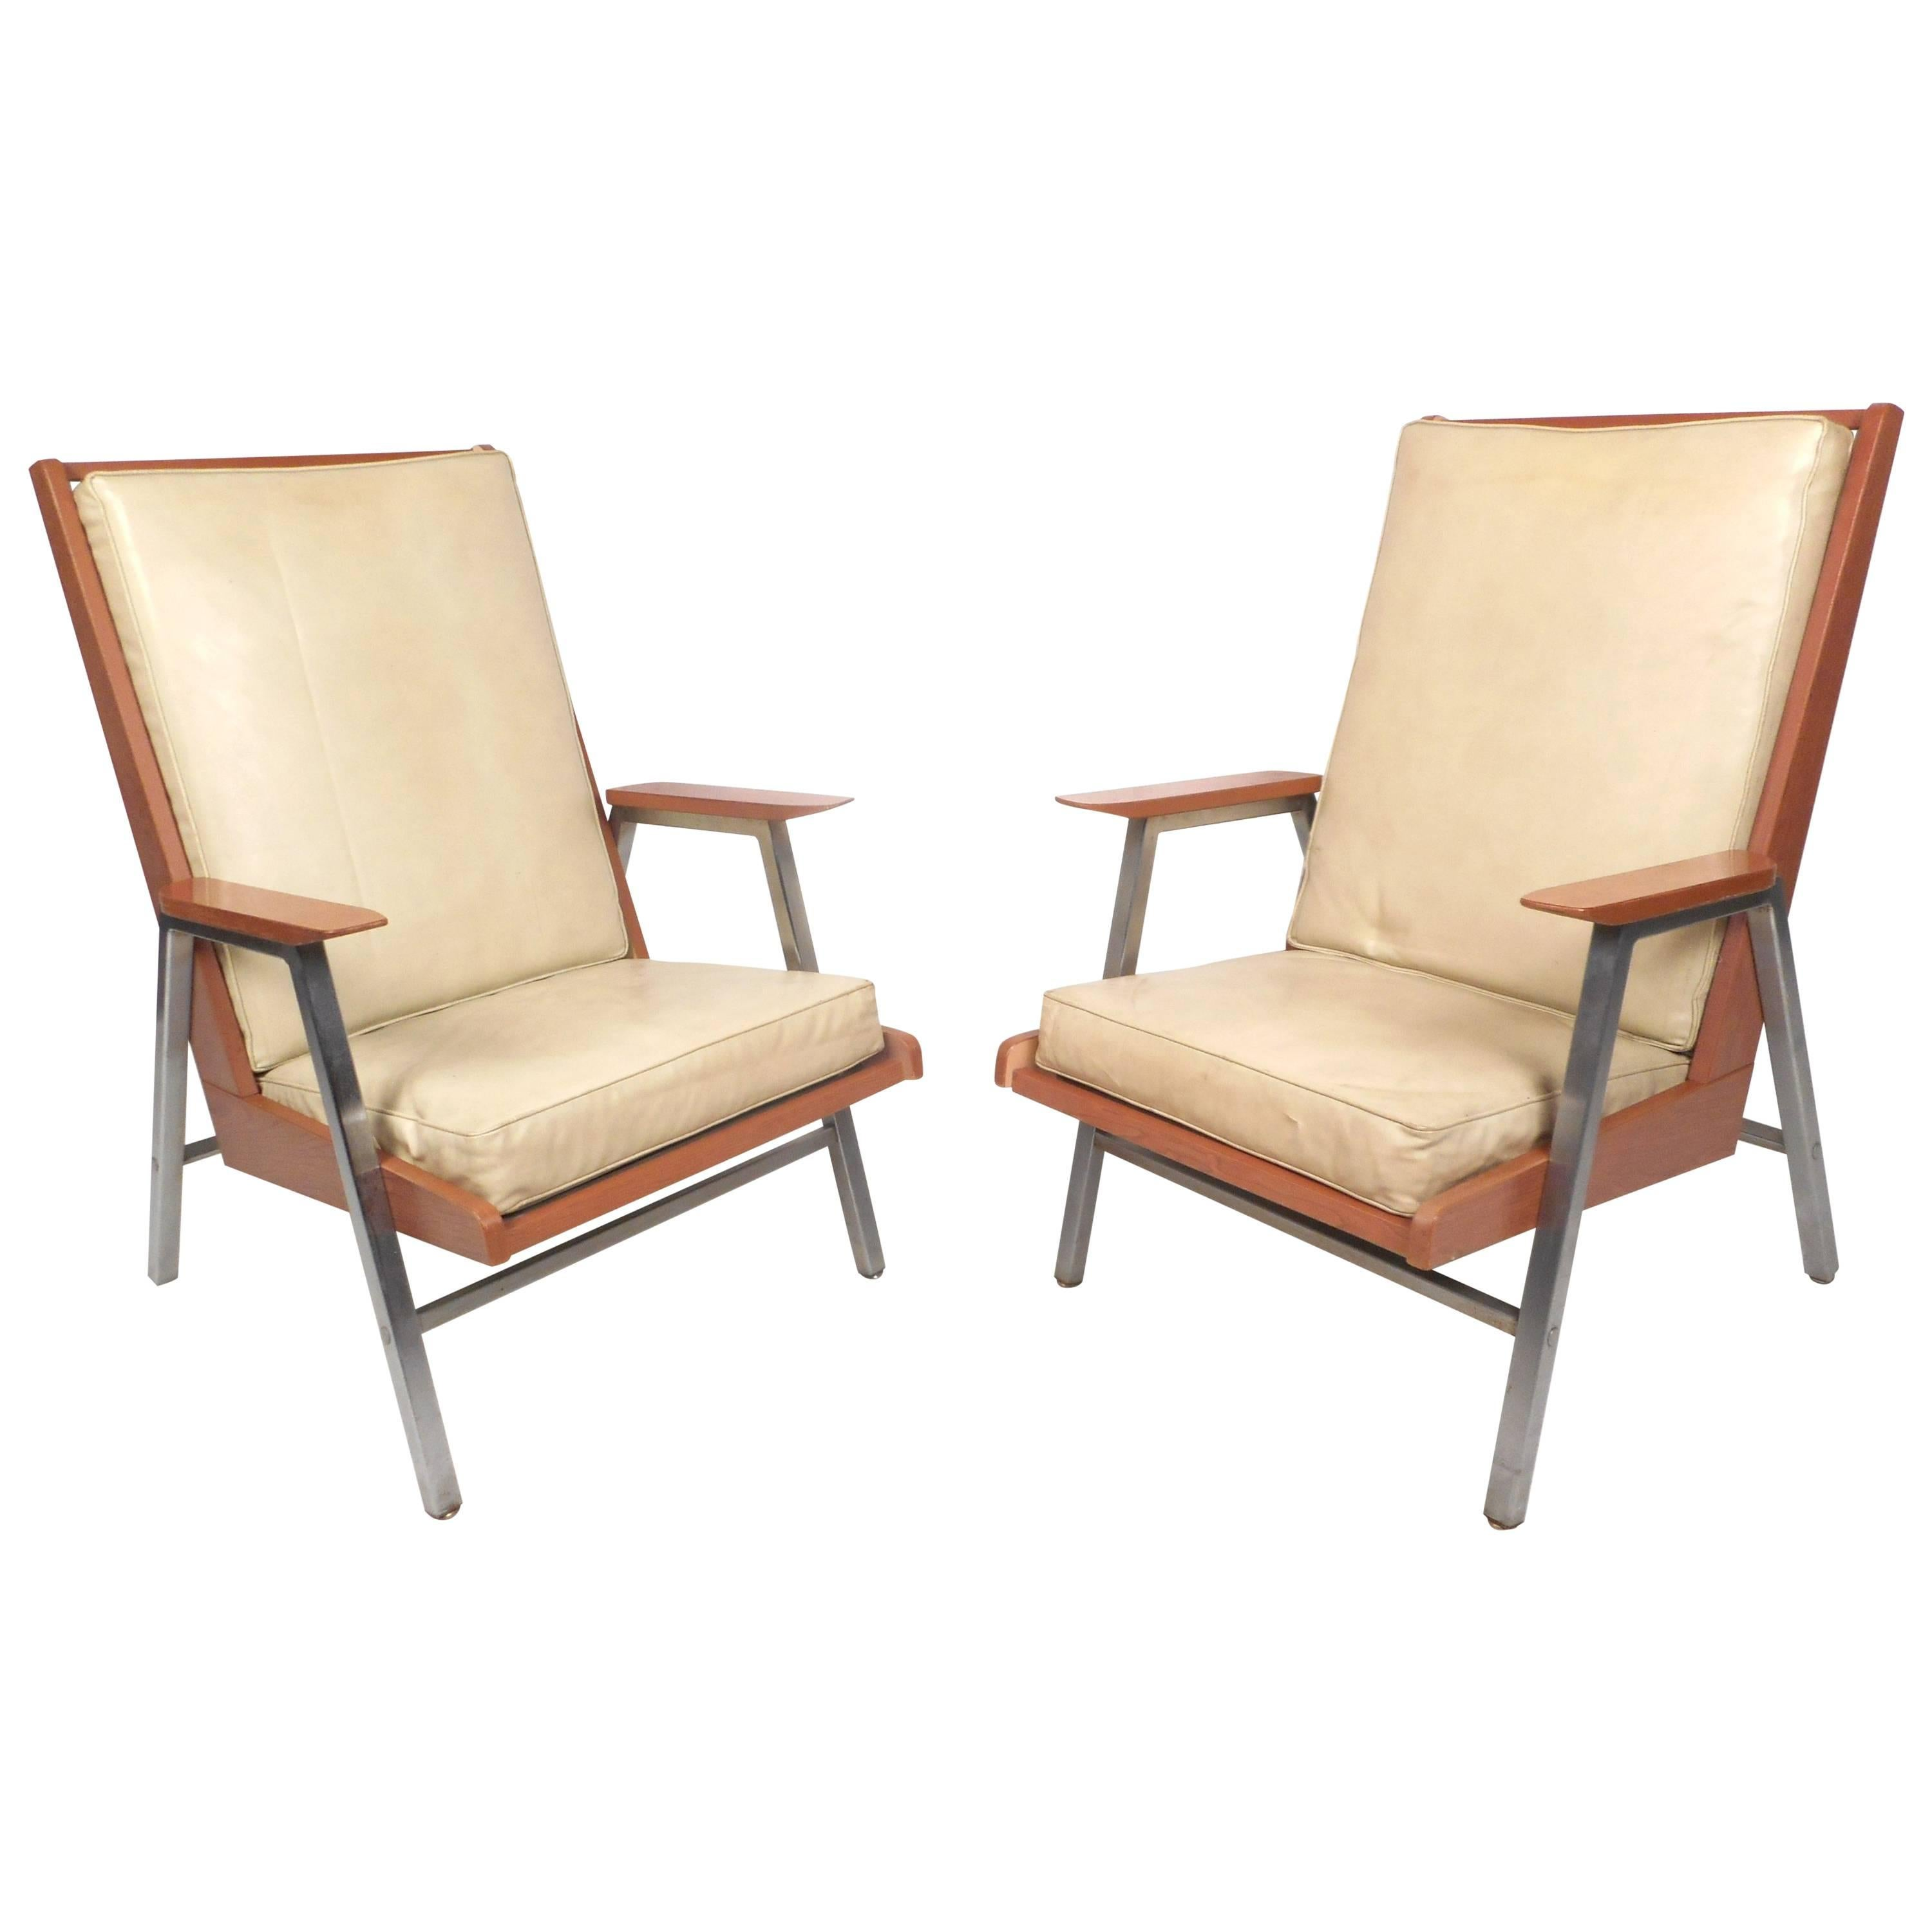 Mid-Century Modern Lounge Chairs by Royal Metal Company